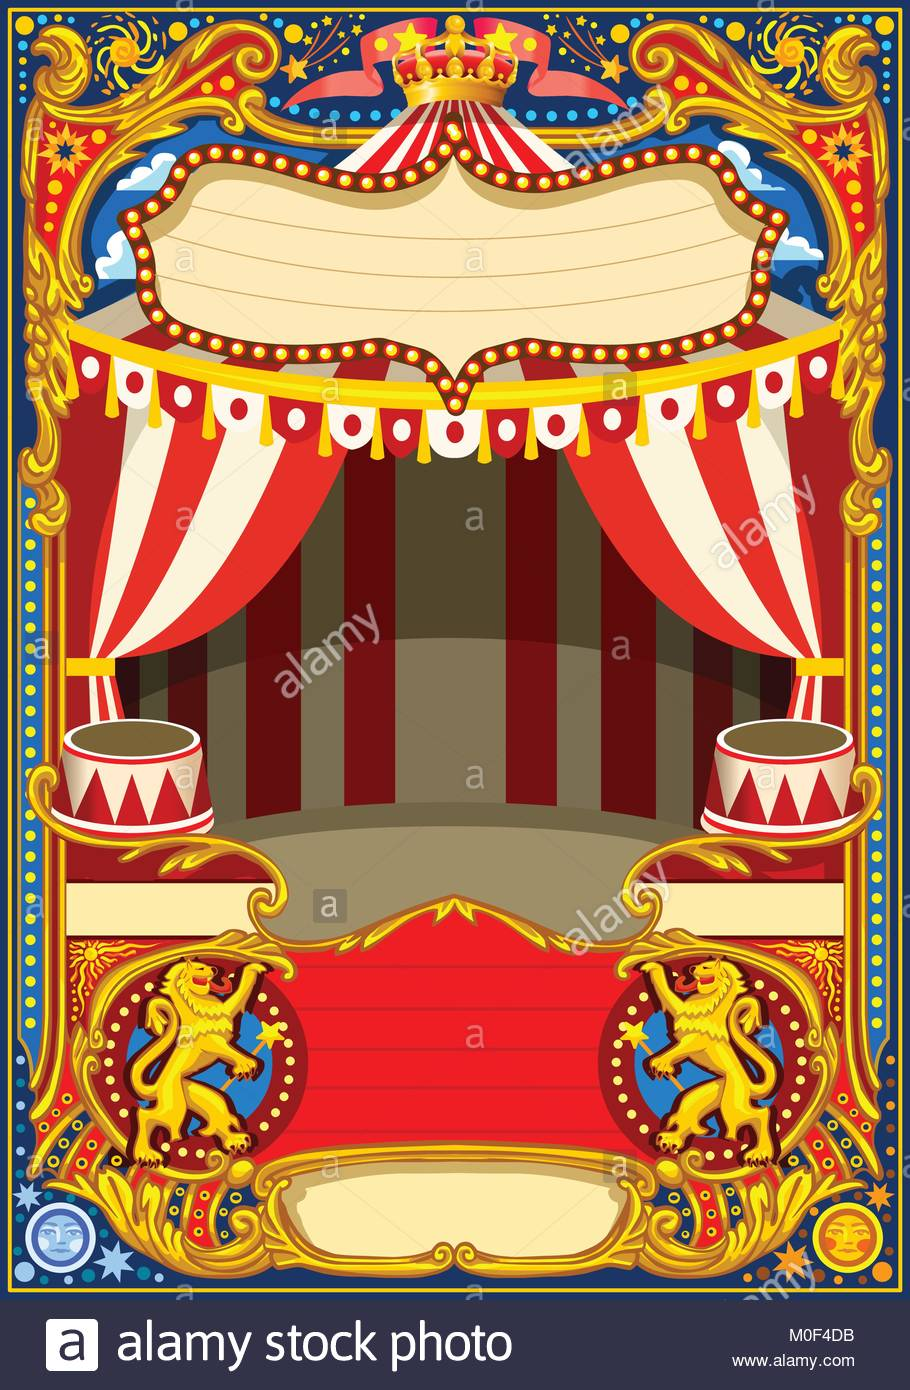 Circus Cartoon Poster Theme Vintage Frame With Circus Tent For Kids